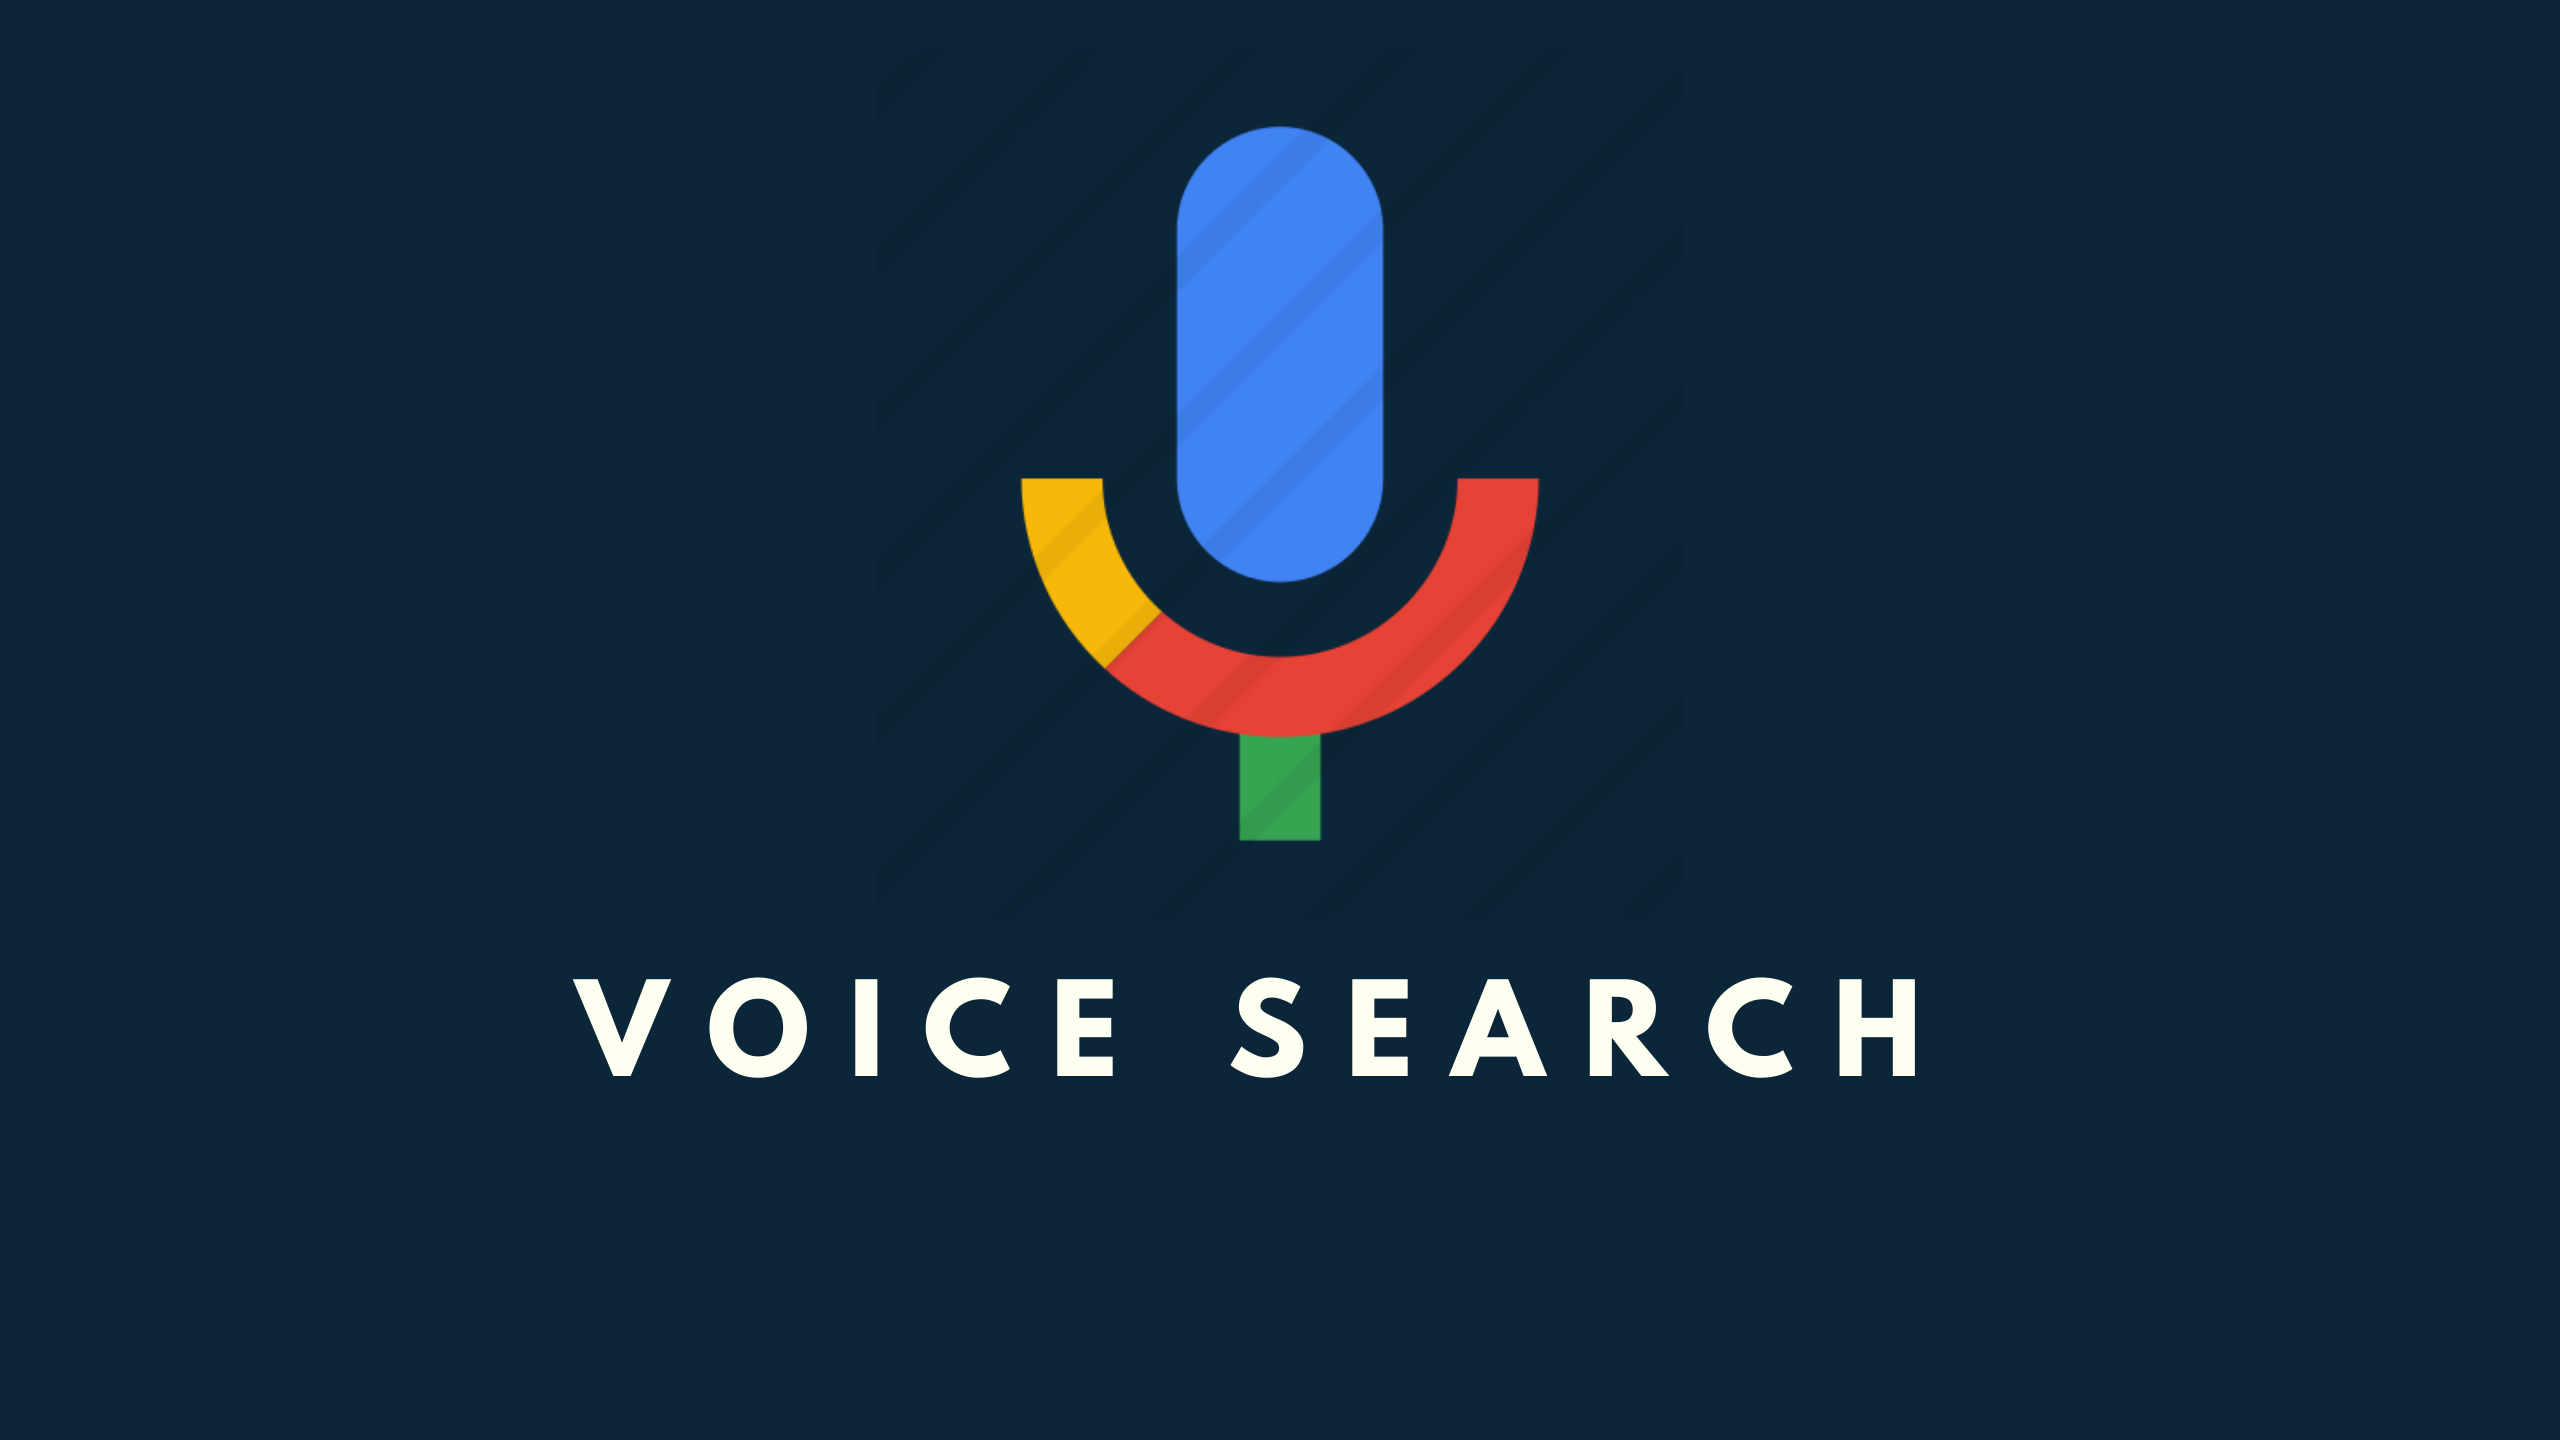 Voice Search Statistics 2019 For Marketers: Vital Stats and Facts